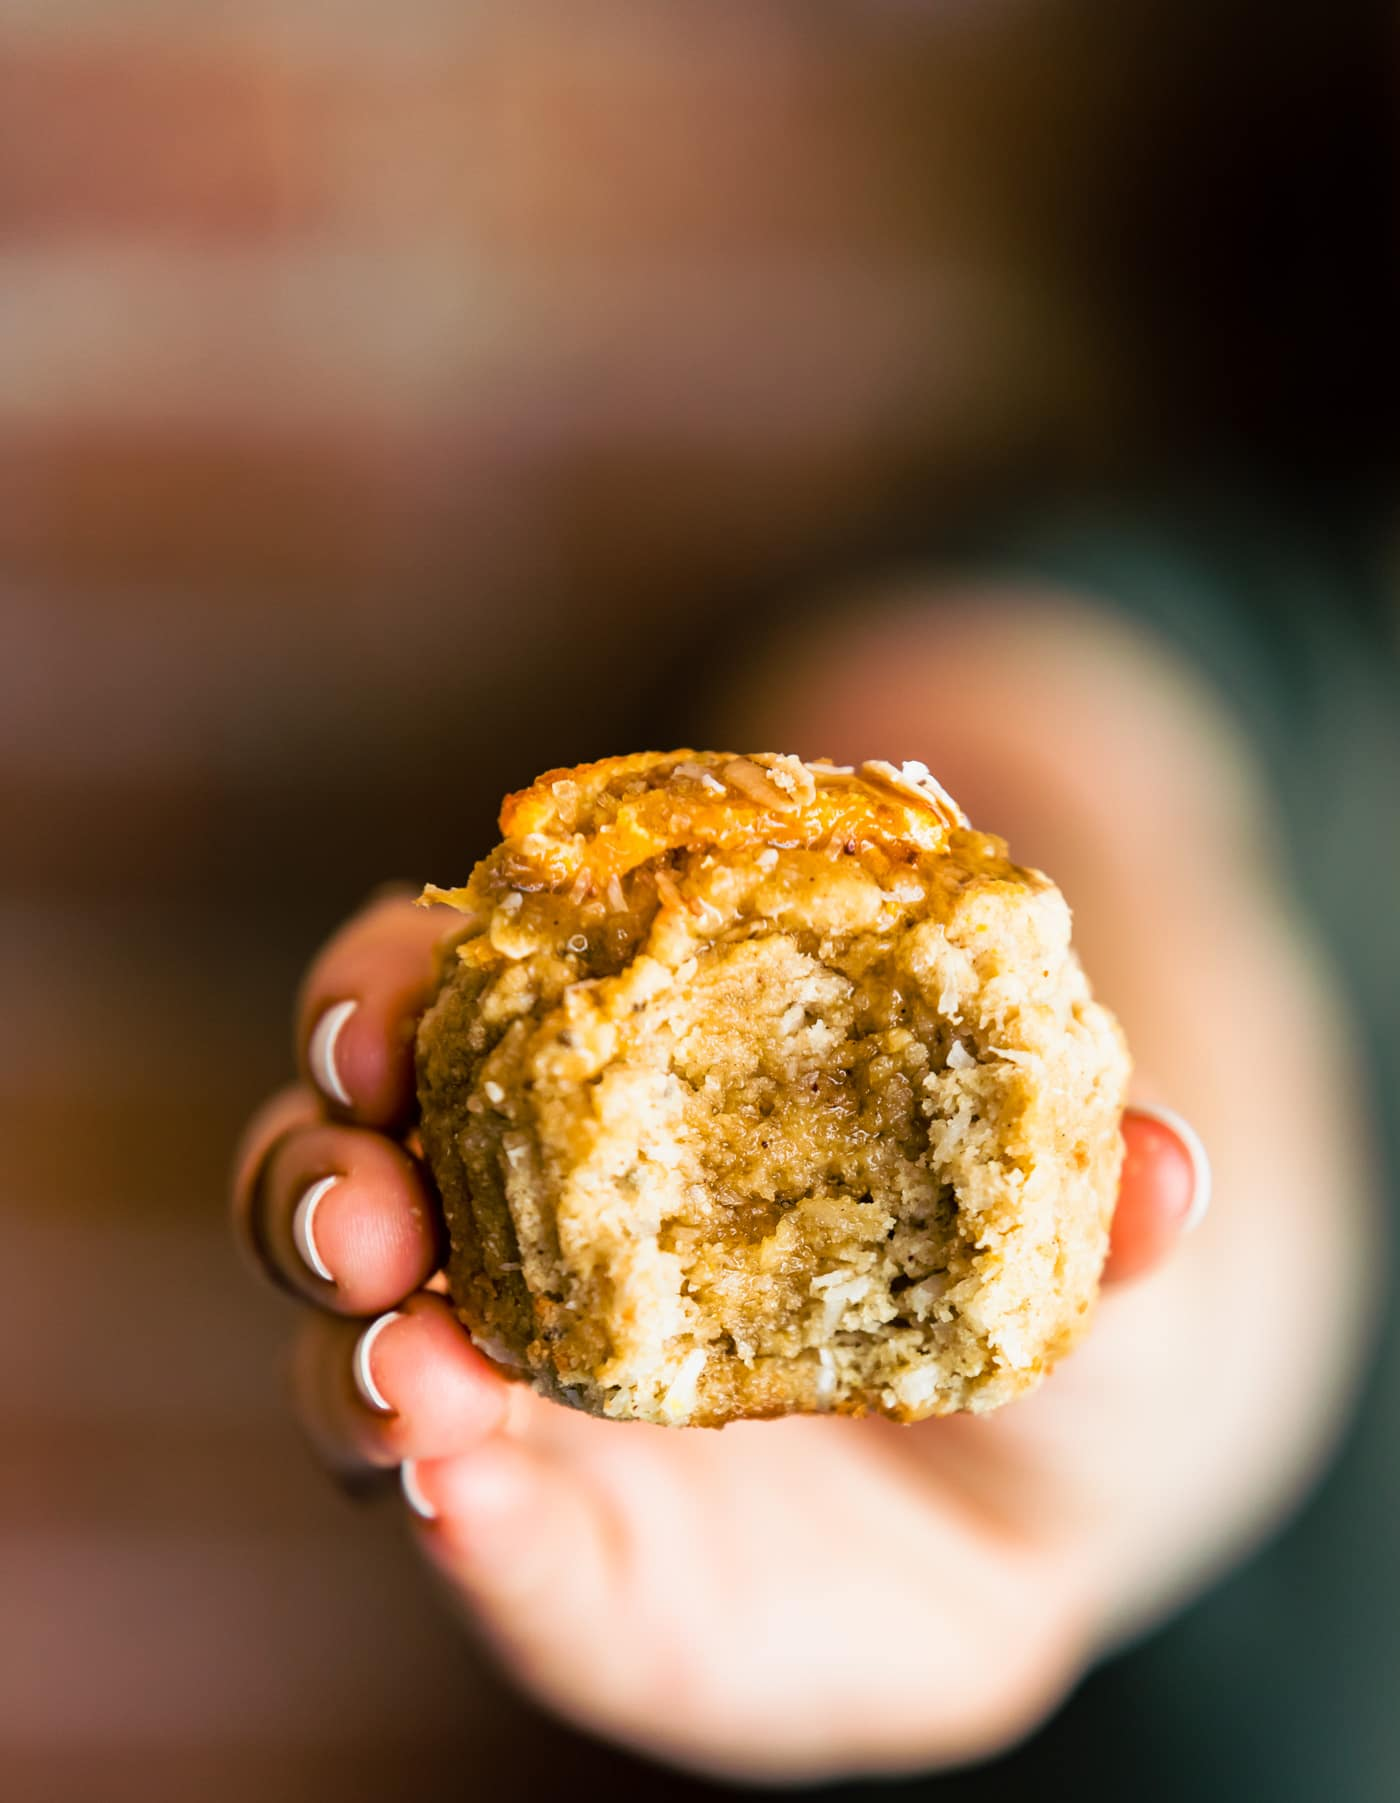 woman's hand with gluten free muffin with bite taken out, holding towards the camera